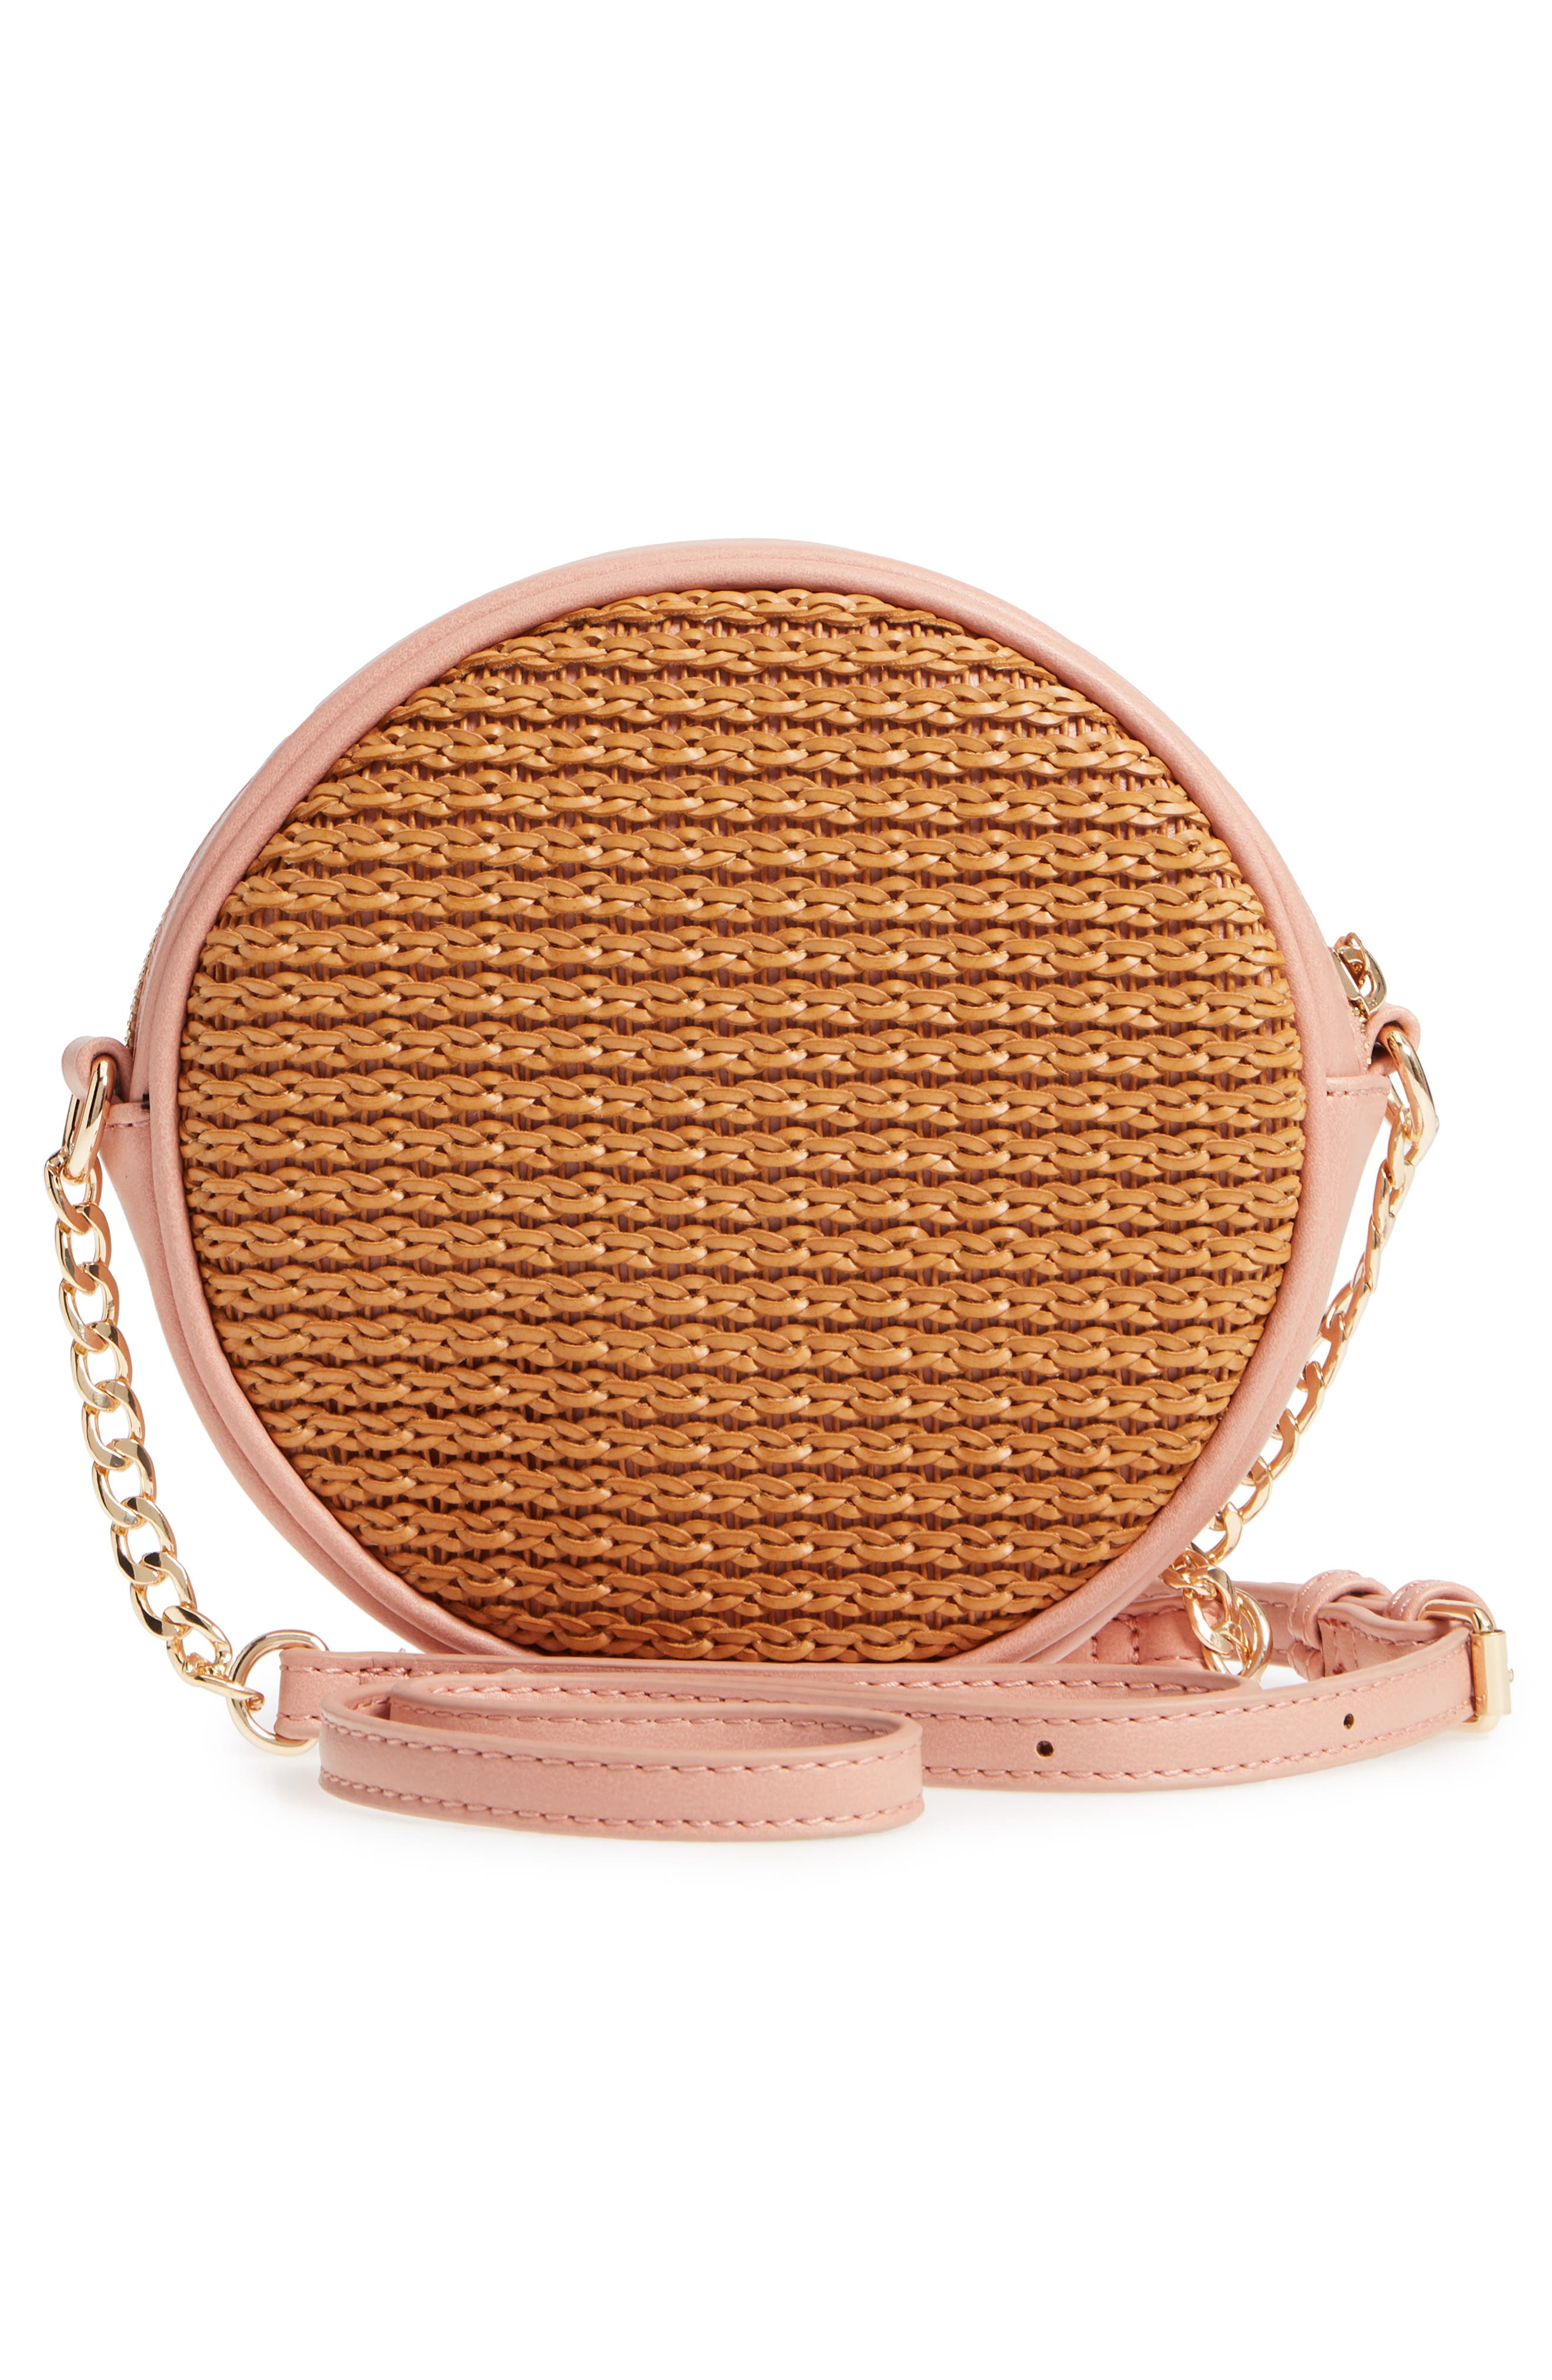 Mali + Lili Basket Weave Vegan Leather Canteen Crossbody Bag,                             Alternate thumbnail 3, color,                             200